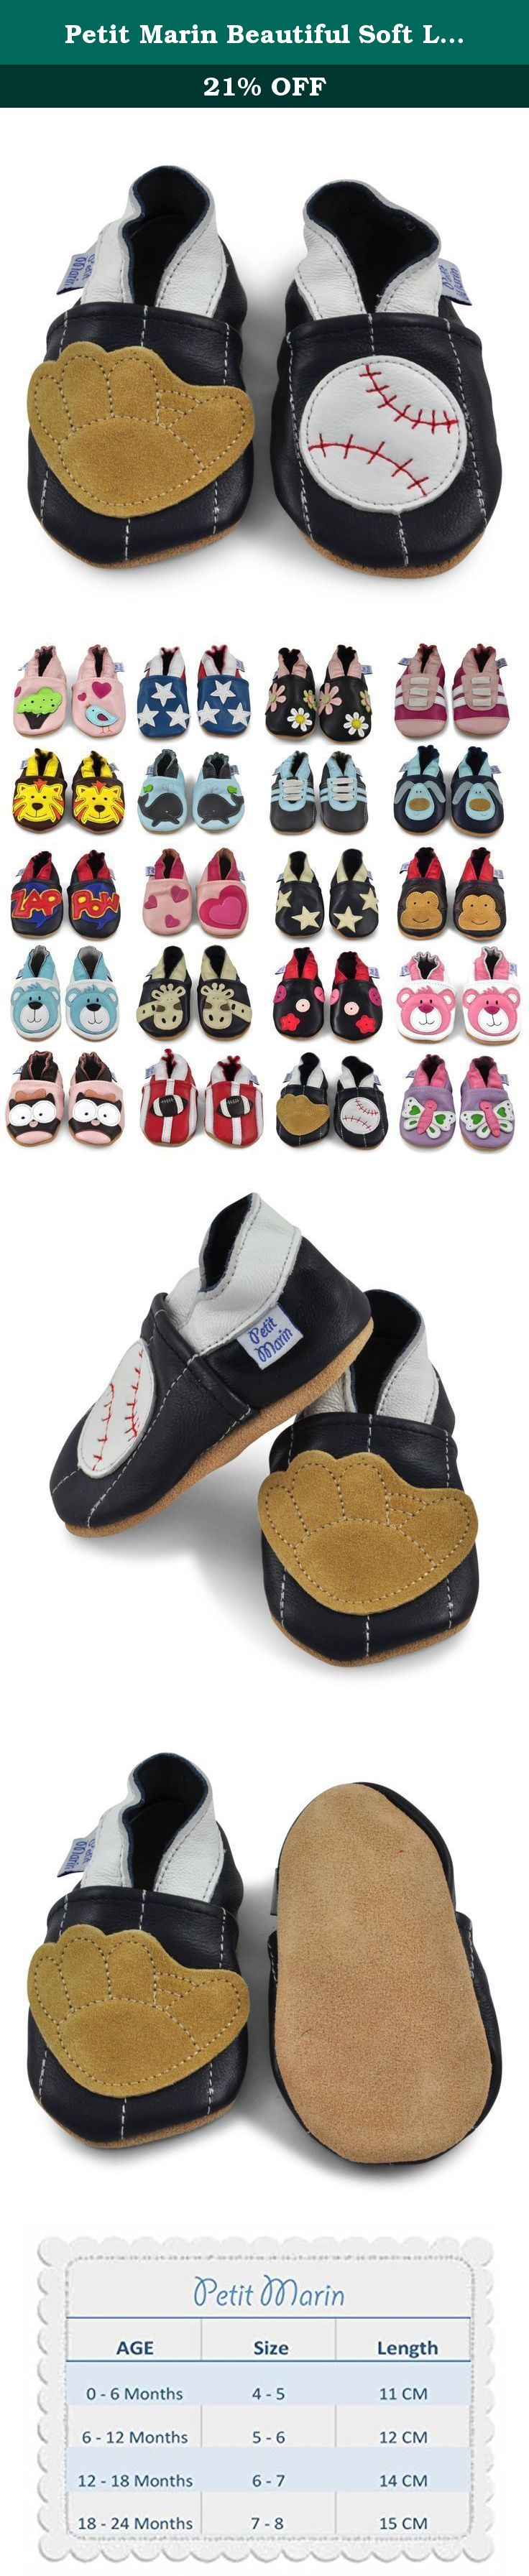 86883435cc76b Petit Marin Beautiful Soft Leather Baby Shoes with Suede Soles - Toddler   Infant  Shoes -